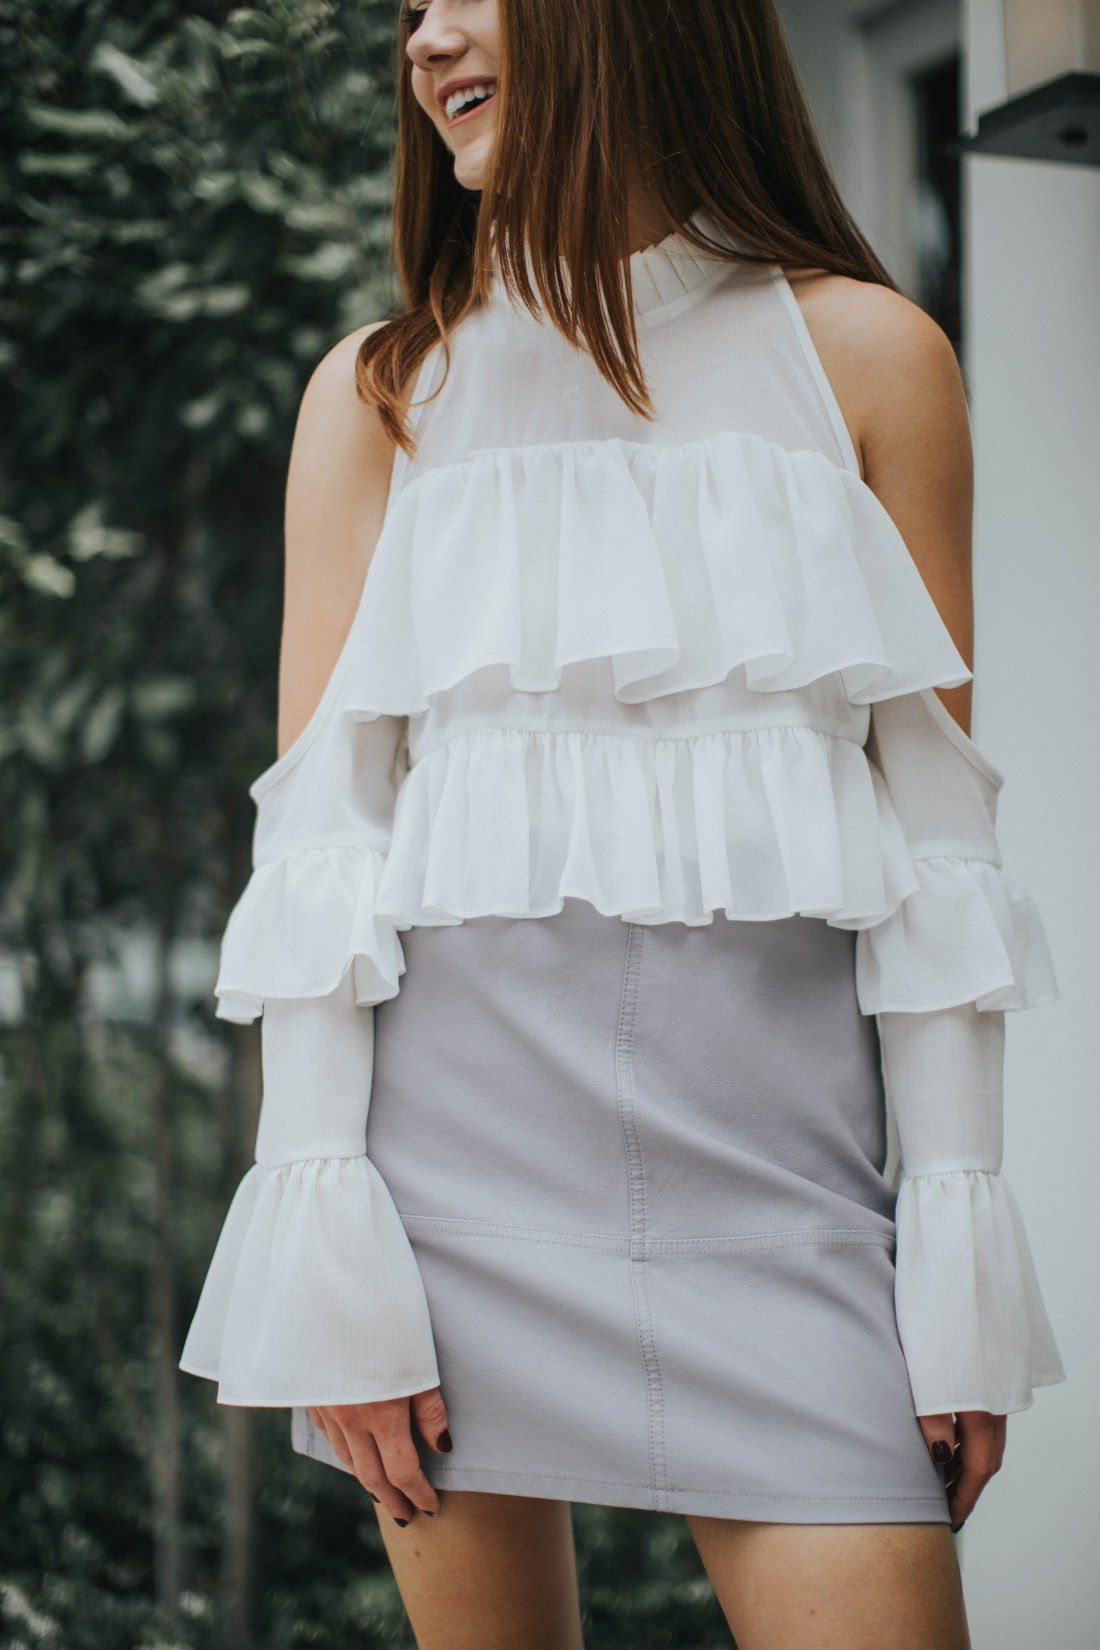 But What Should I Wear - ASOS ruffles could shoulder top